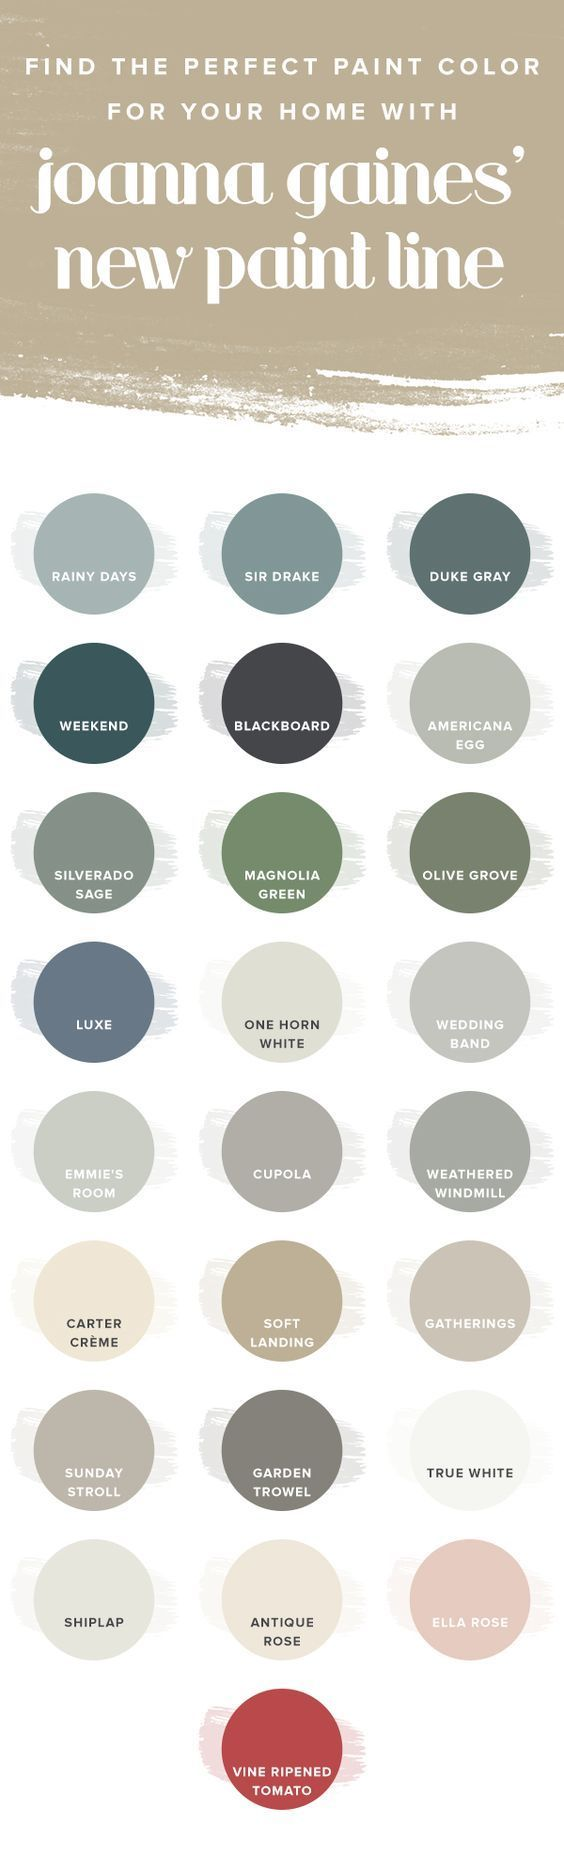 Color crimson on pinterest style guides painted -  Fixer Upper Joanna Gaines Latest News May Bring Her Into Your Home